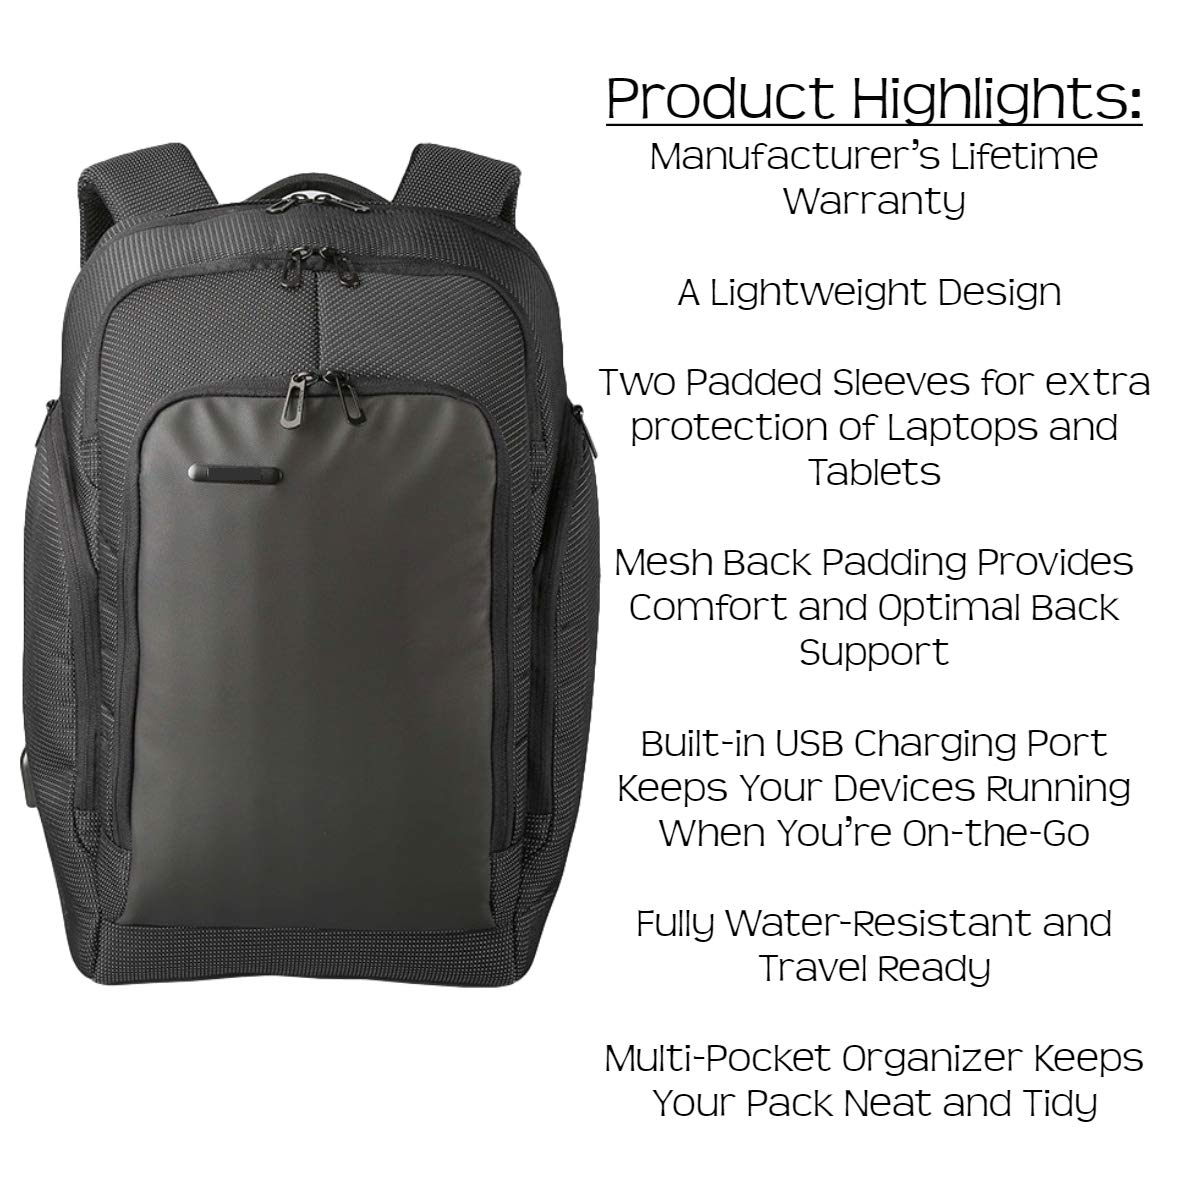 Amazon.com: Prime Weekender Travel Backpack with USB Charging Port (Black) TSA Compliant, Anti-Theft Laptop Bag | Lightweight, Portable Comfort ...